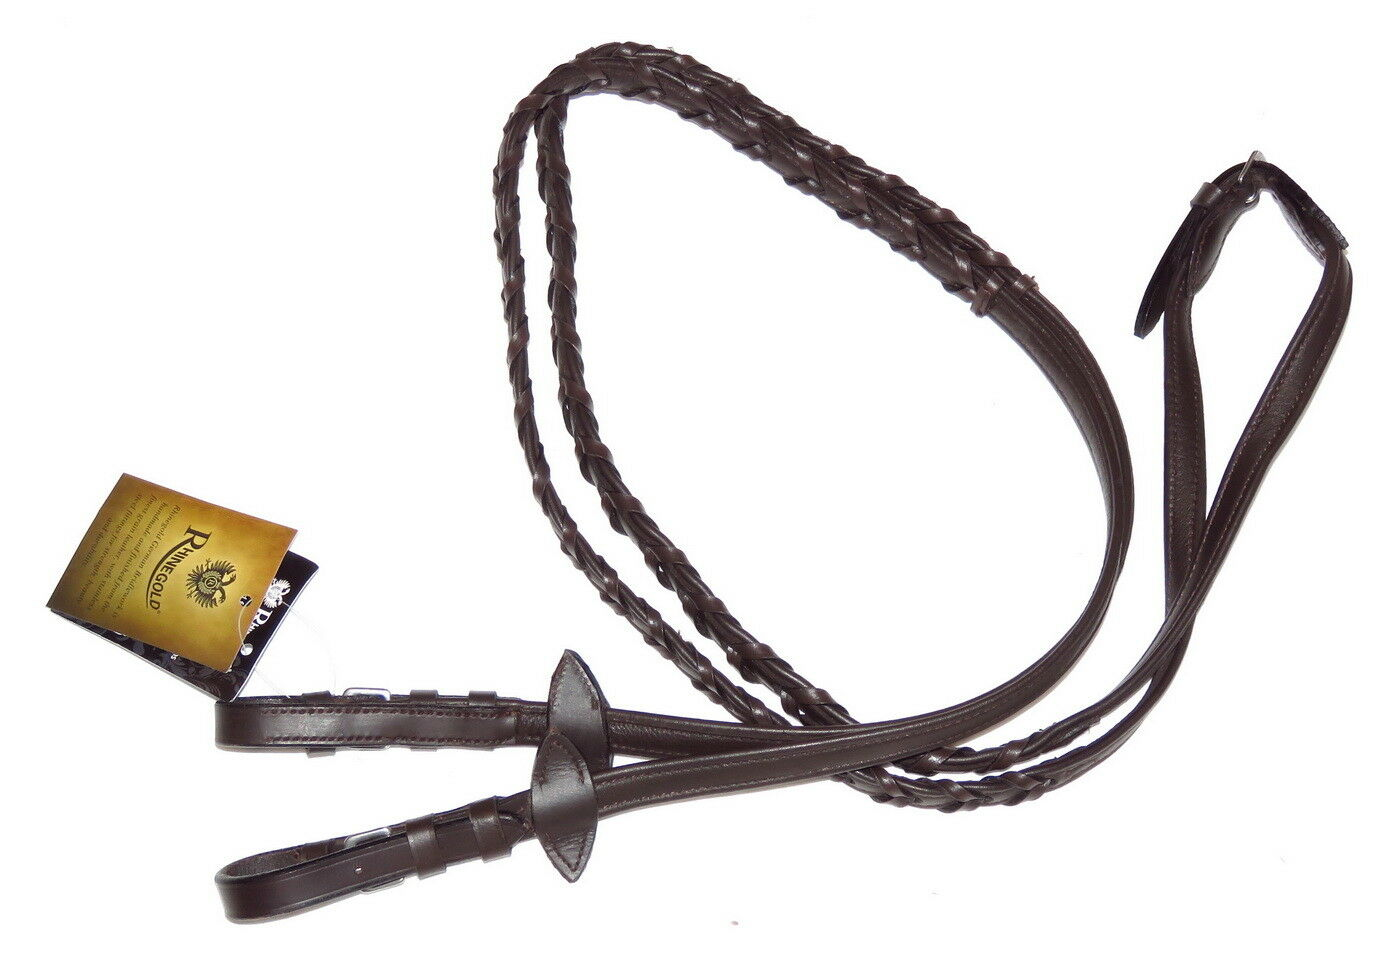 RHINEgold Laced Woven Braided SOFT NAPPA LEATHER PADDED Reins Showing Dressage